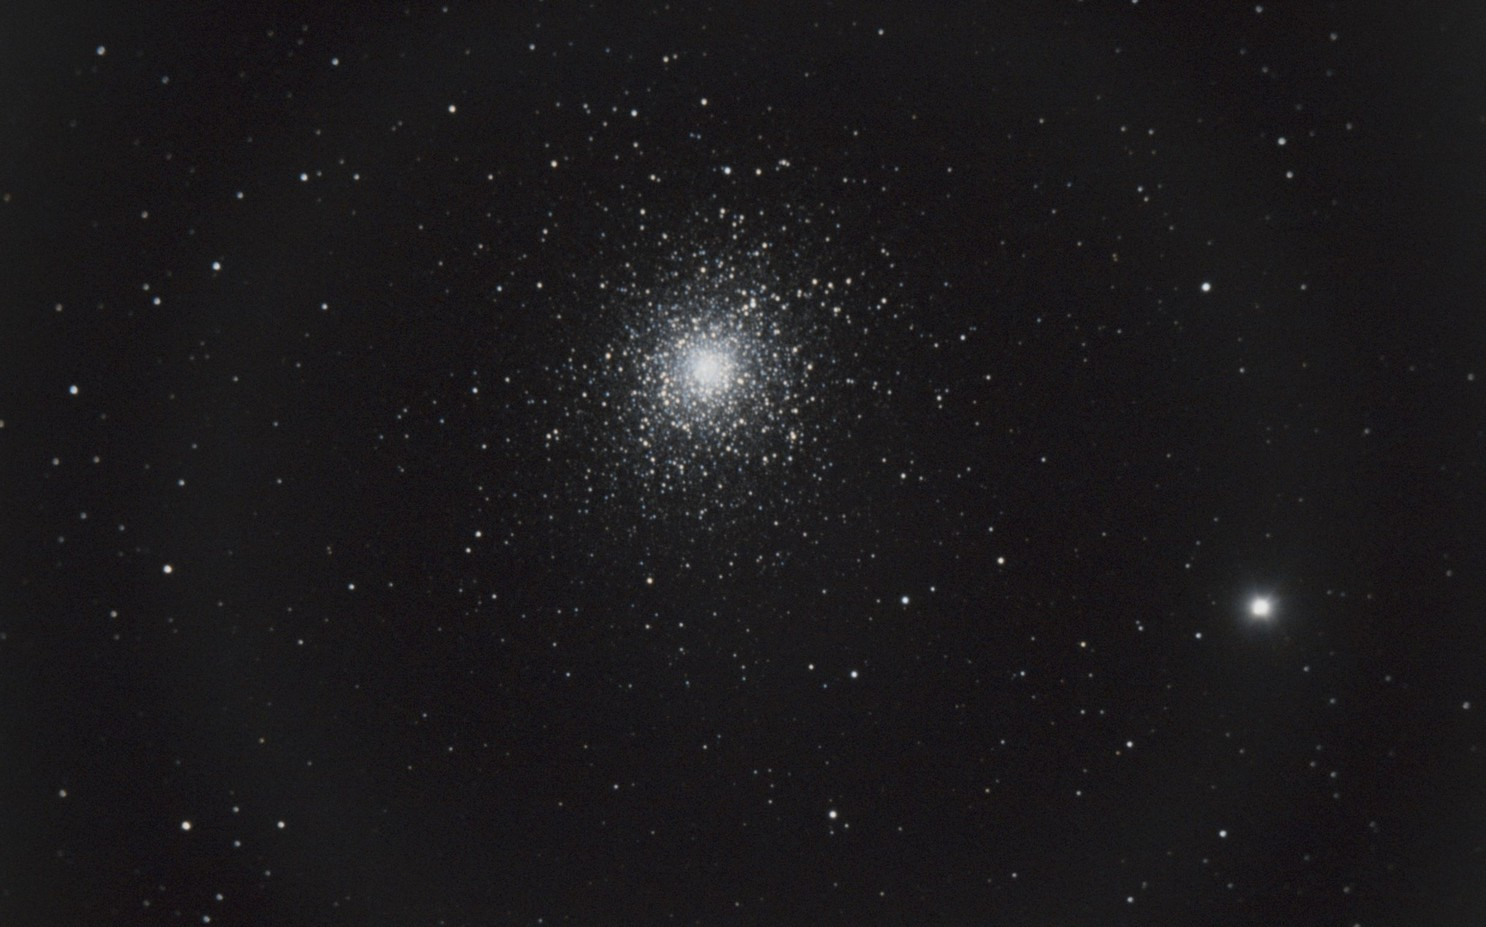 M5 20200514 T200 1260 20x60s 1600iso sortie siril photofiltre